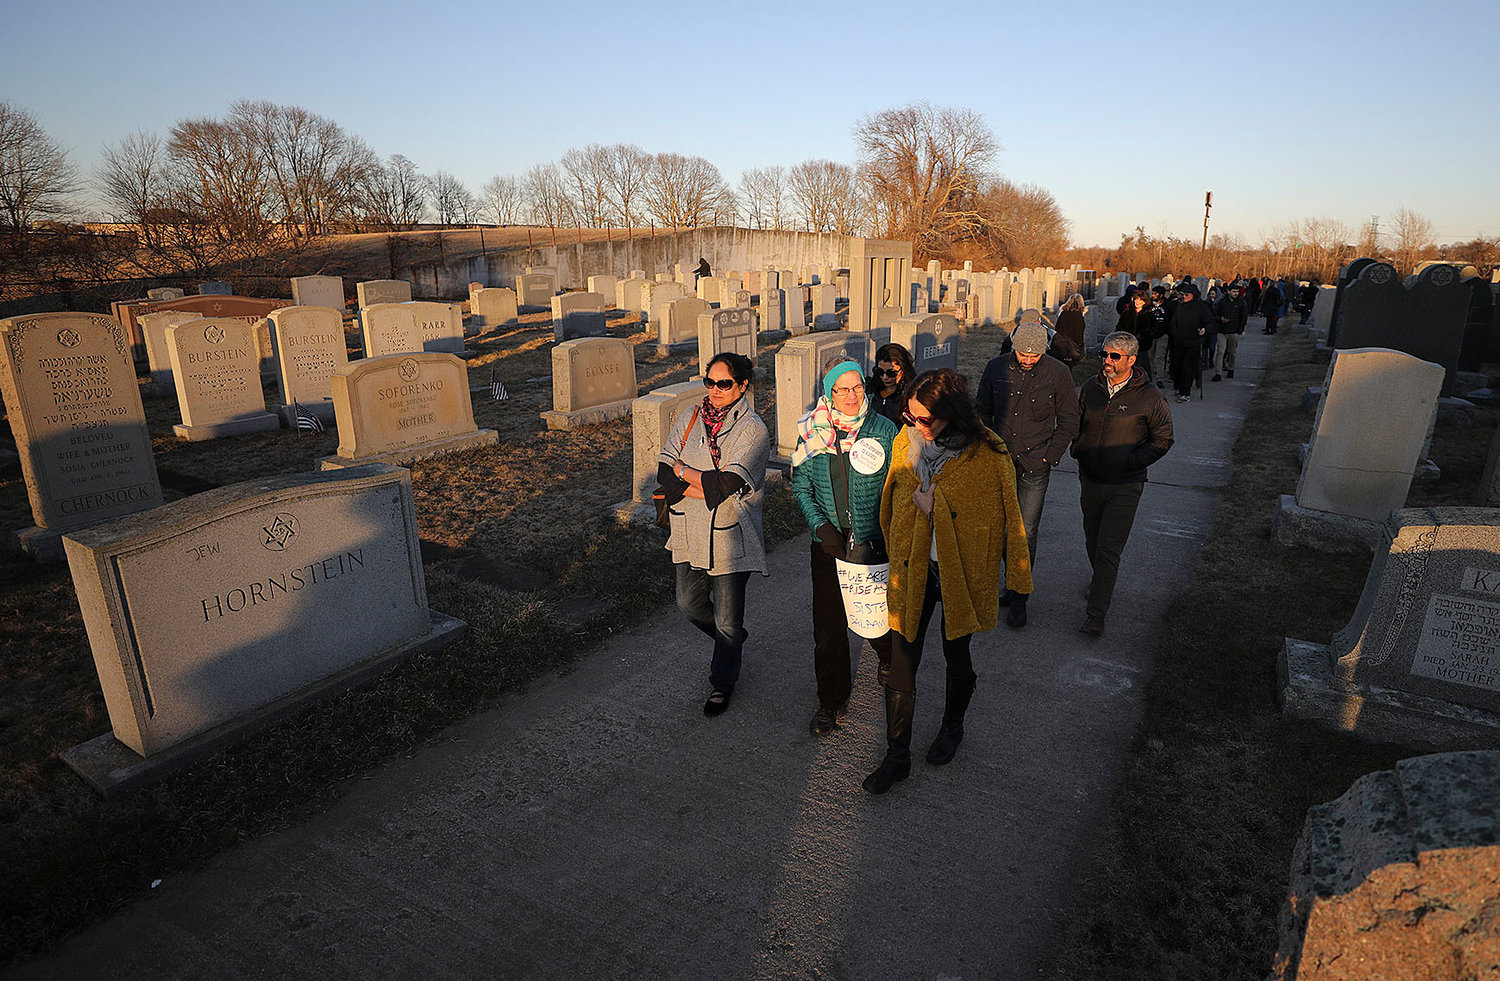 People walk through the cemetery after the ceremony.